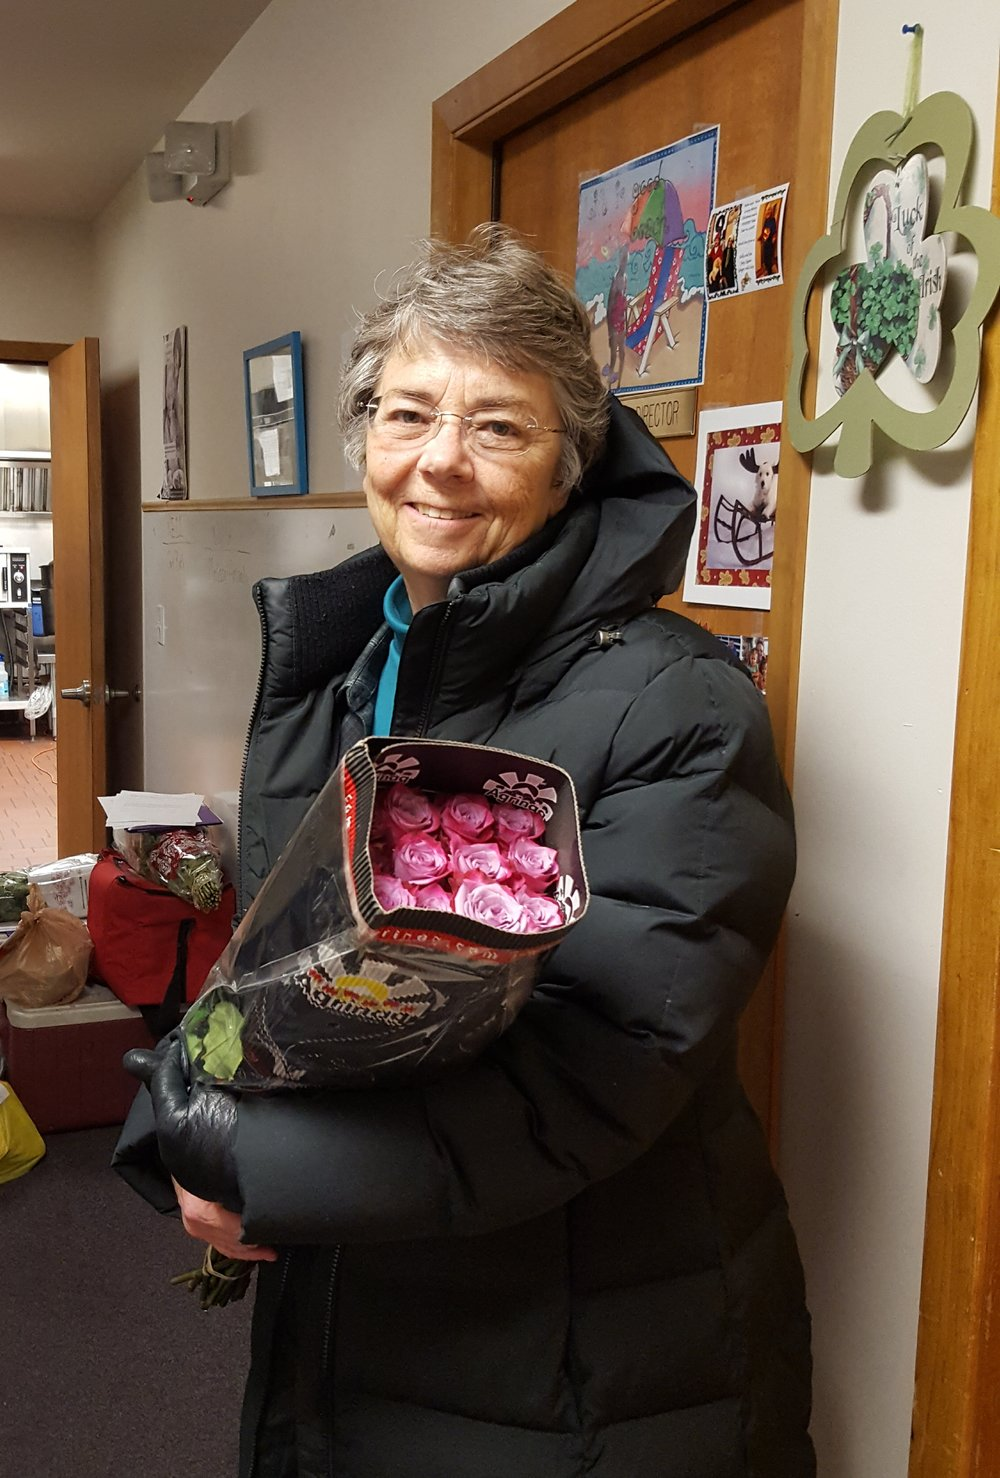 Volunteer Cathy delivering flowers to seniors on her route, 2-22-18.jpg